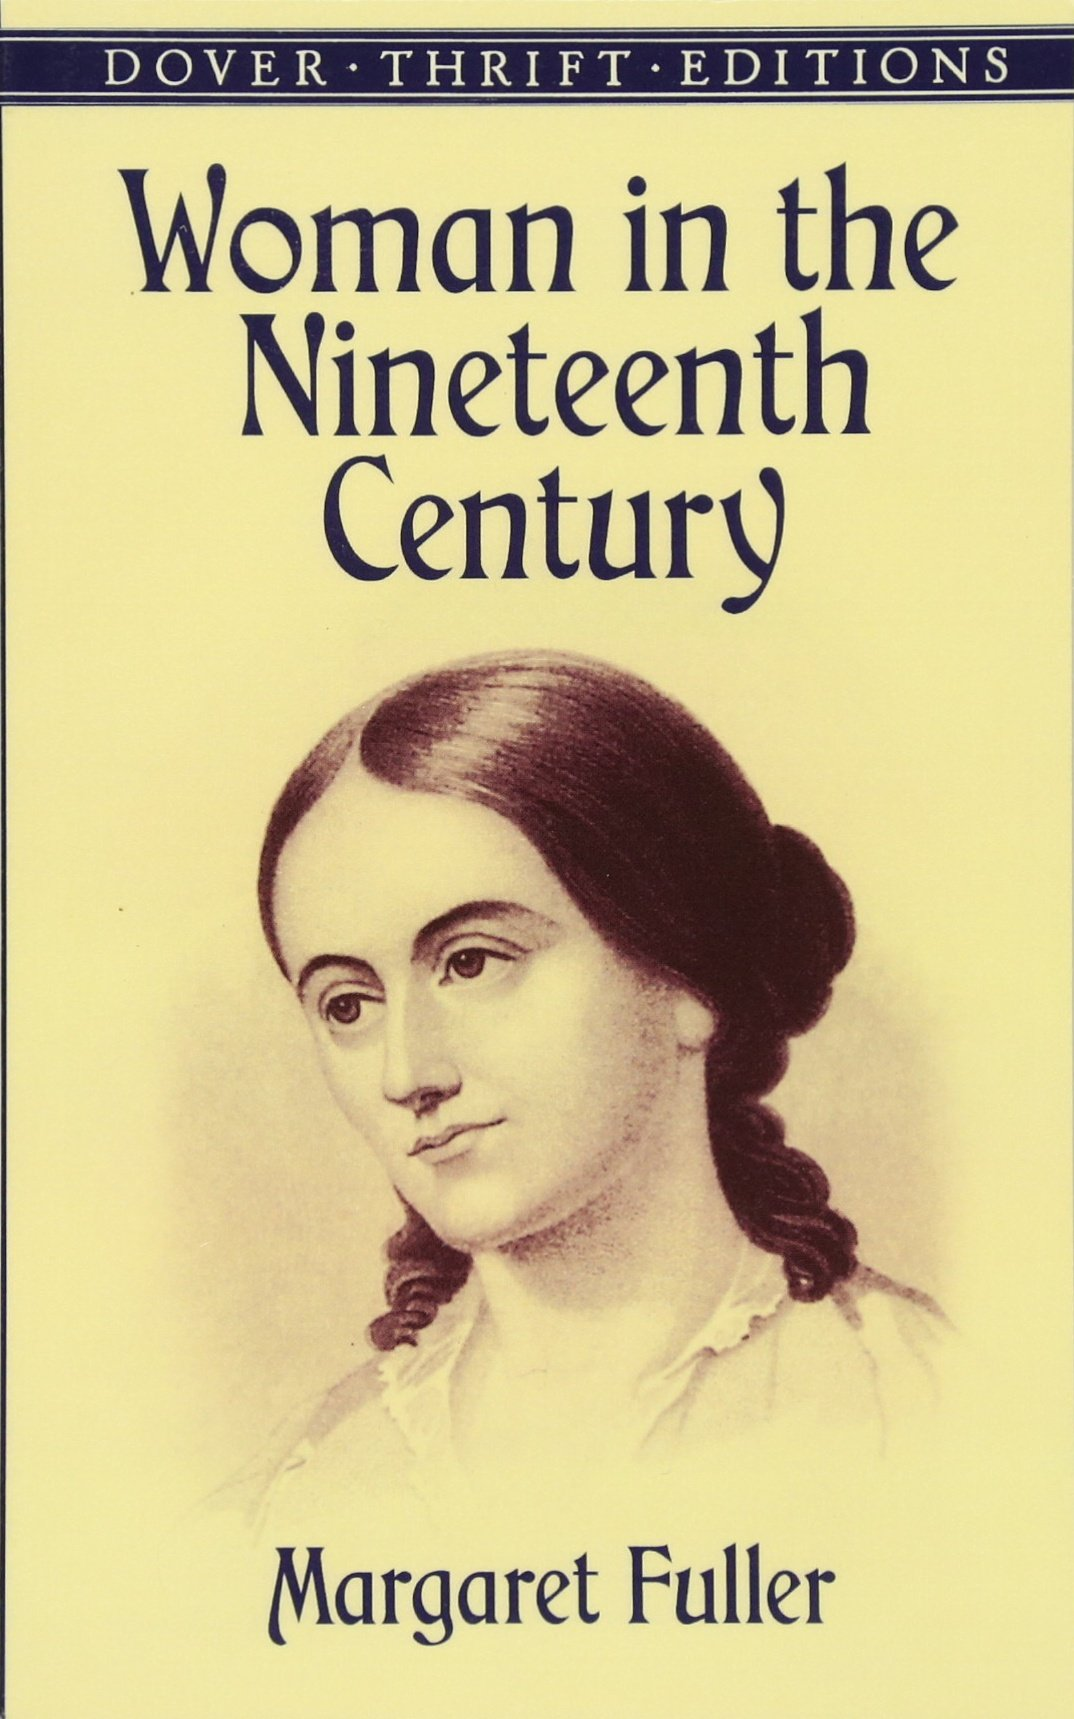 Dover Thrift Editions : WOMAN IN THE NINETEENTH CENTURY